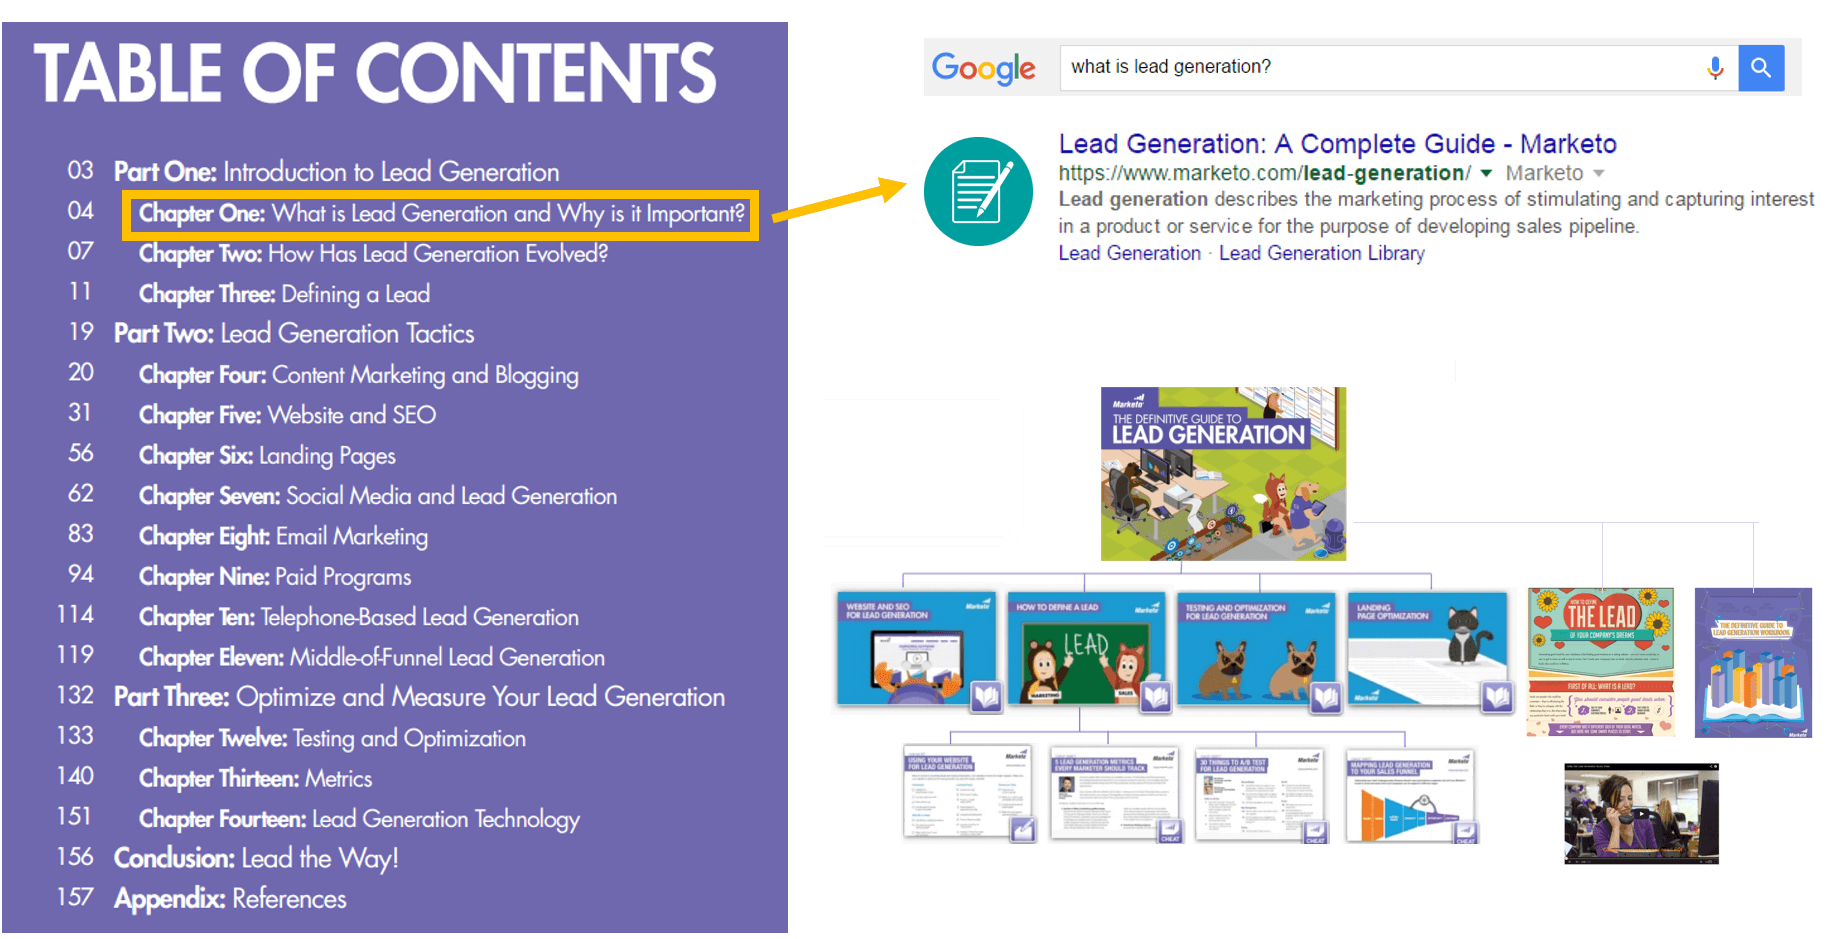 Example Marketo Re-purpose eBook content